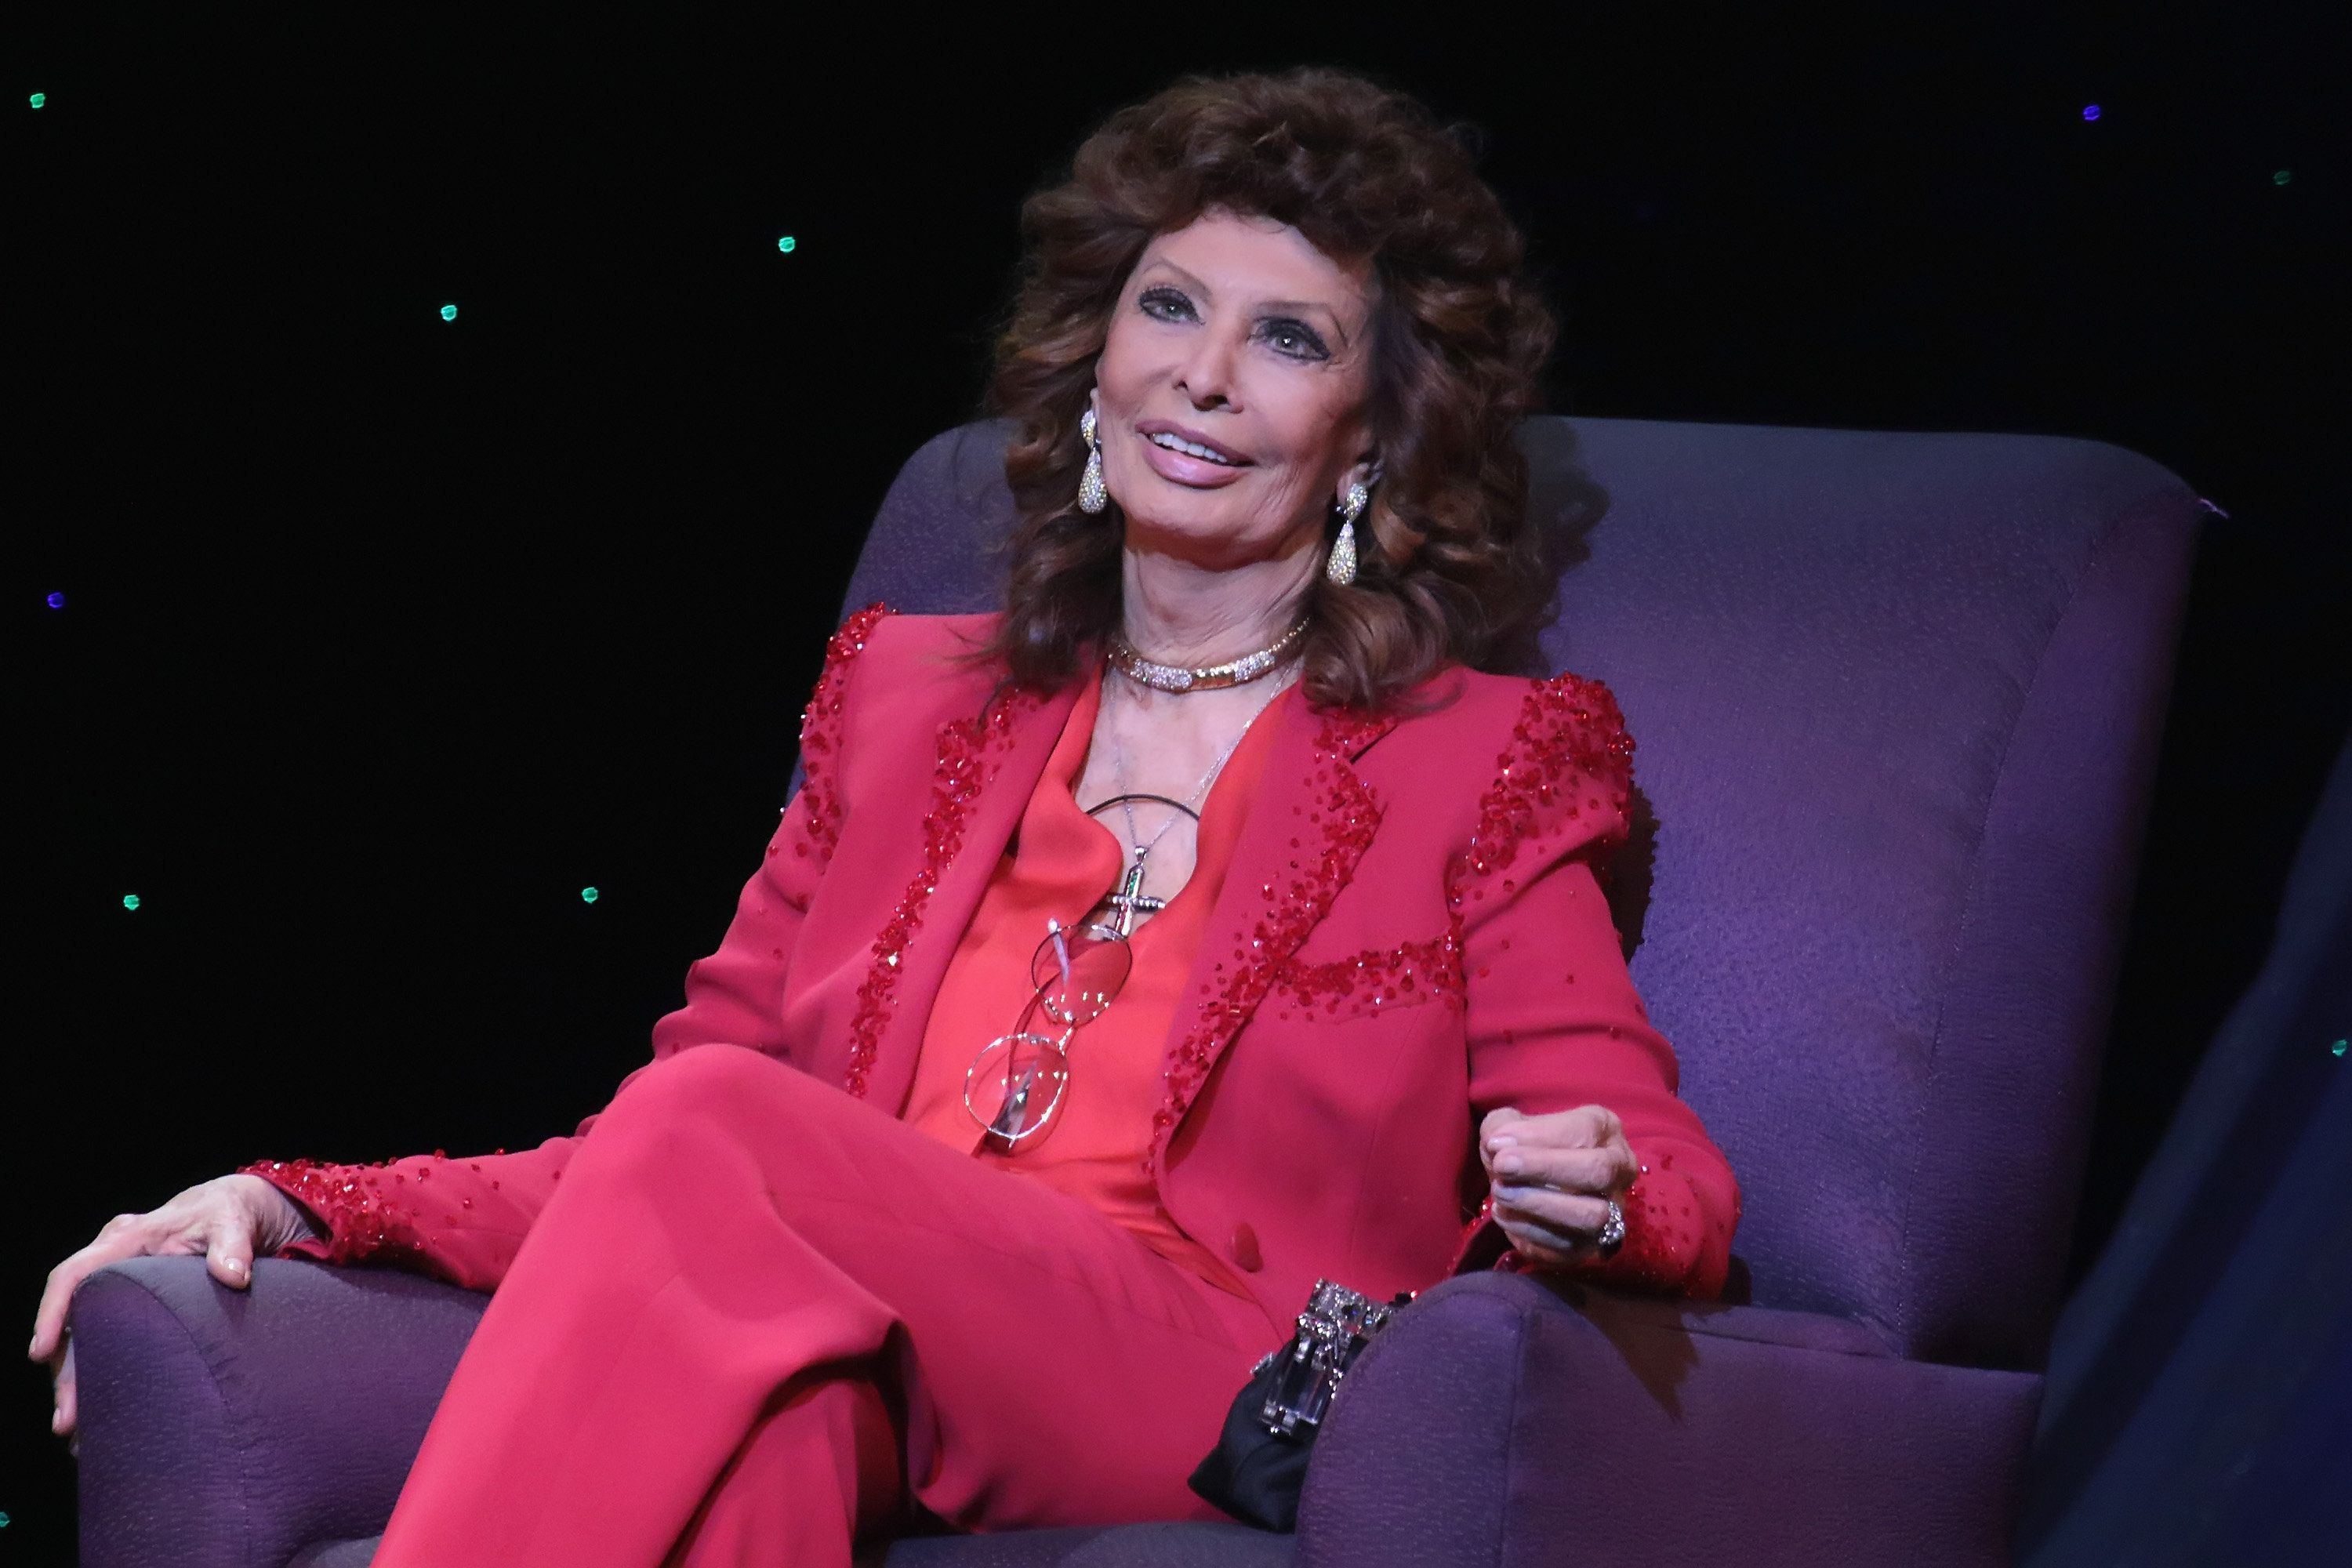 Sophia Loren talks to the audience at The Borgata Event Center on March 11, 2016 in Atlantic City, New Jersey.